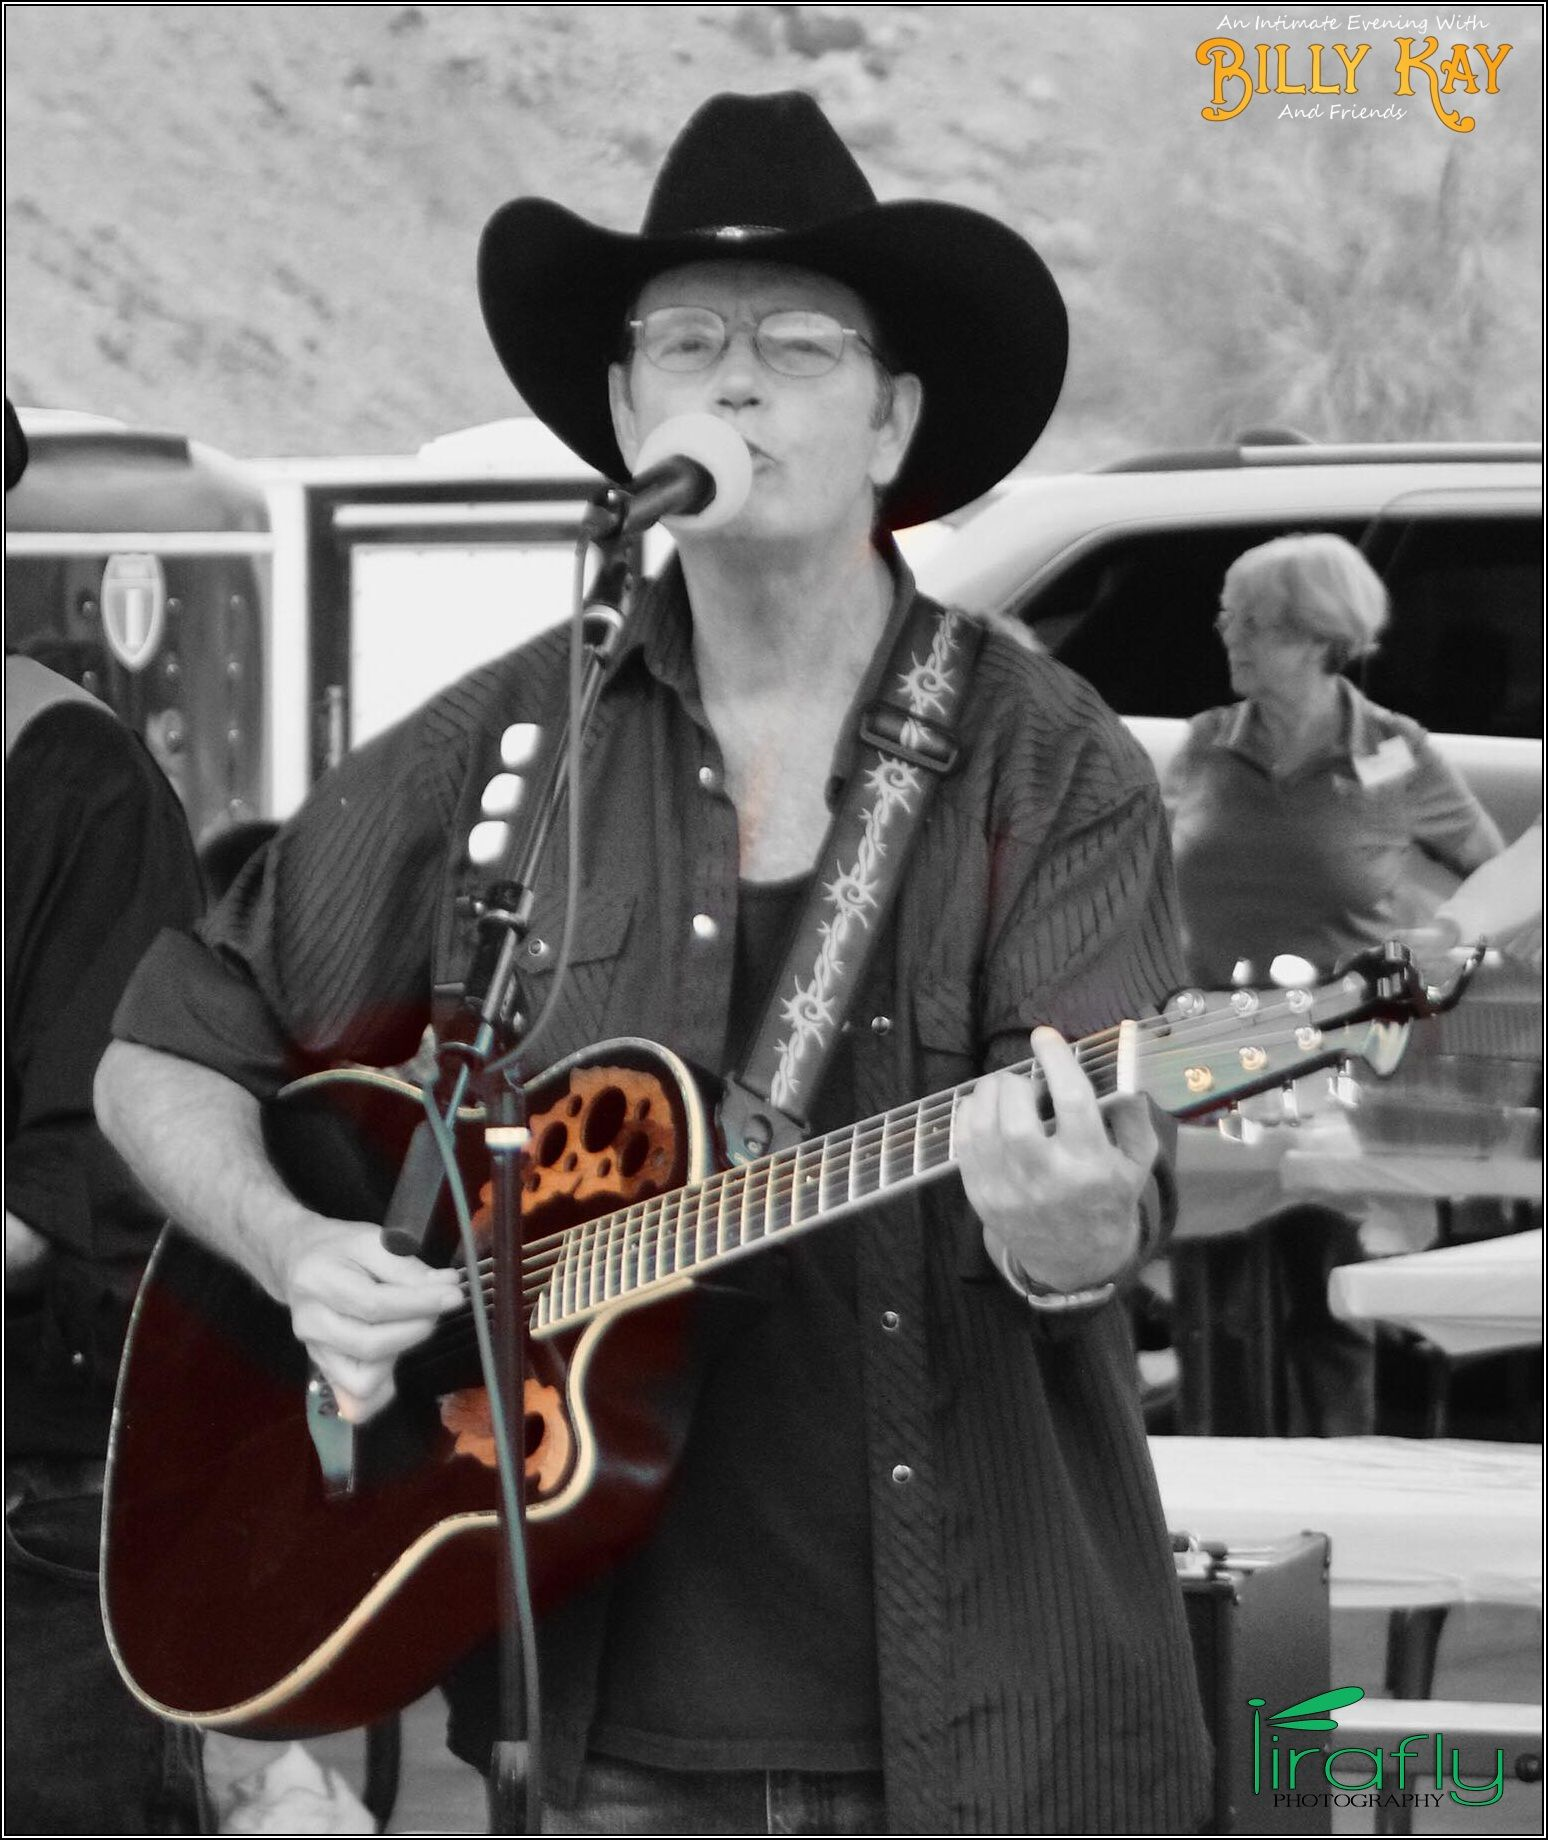 Pin by billy kay on live with images cowboy hats